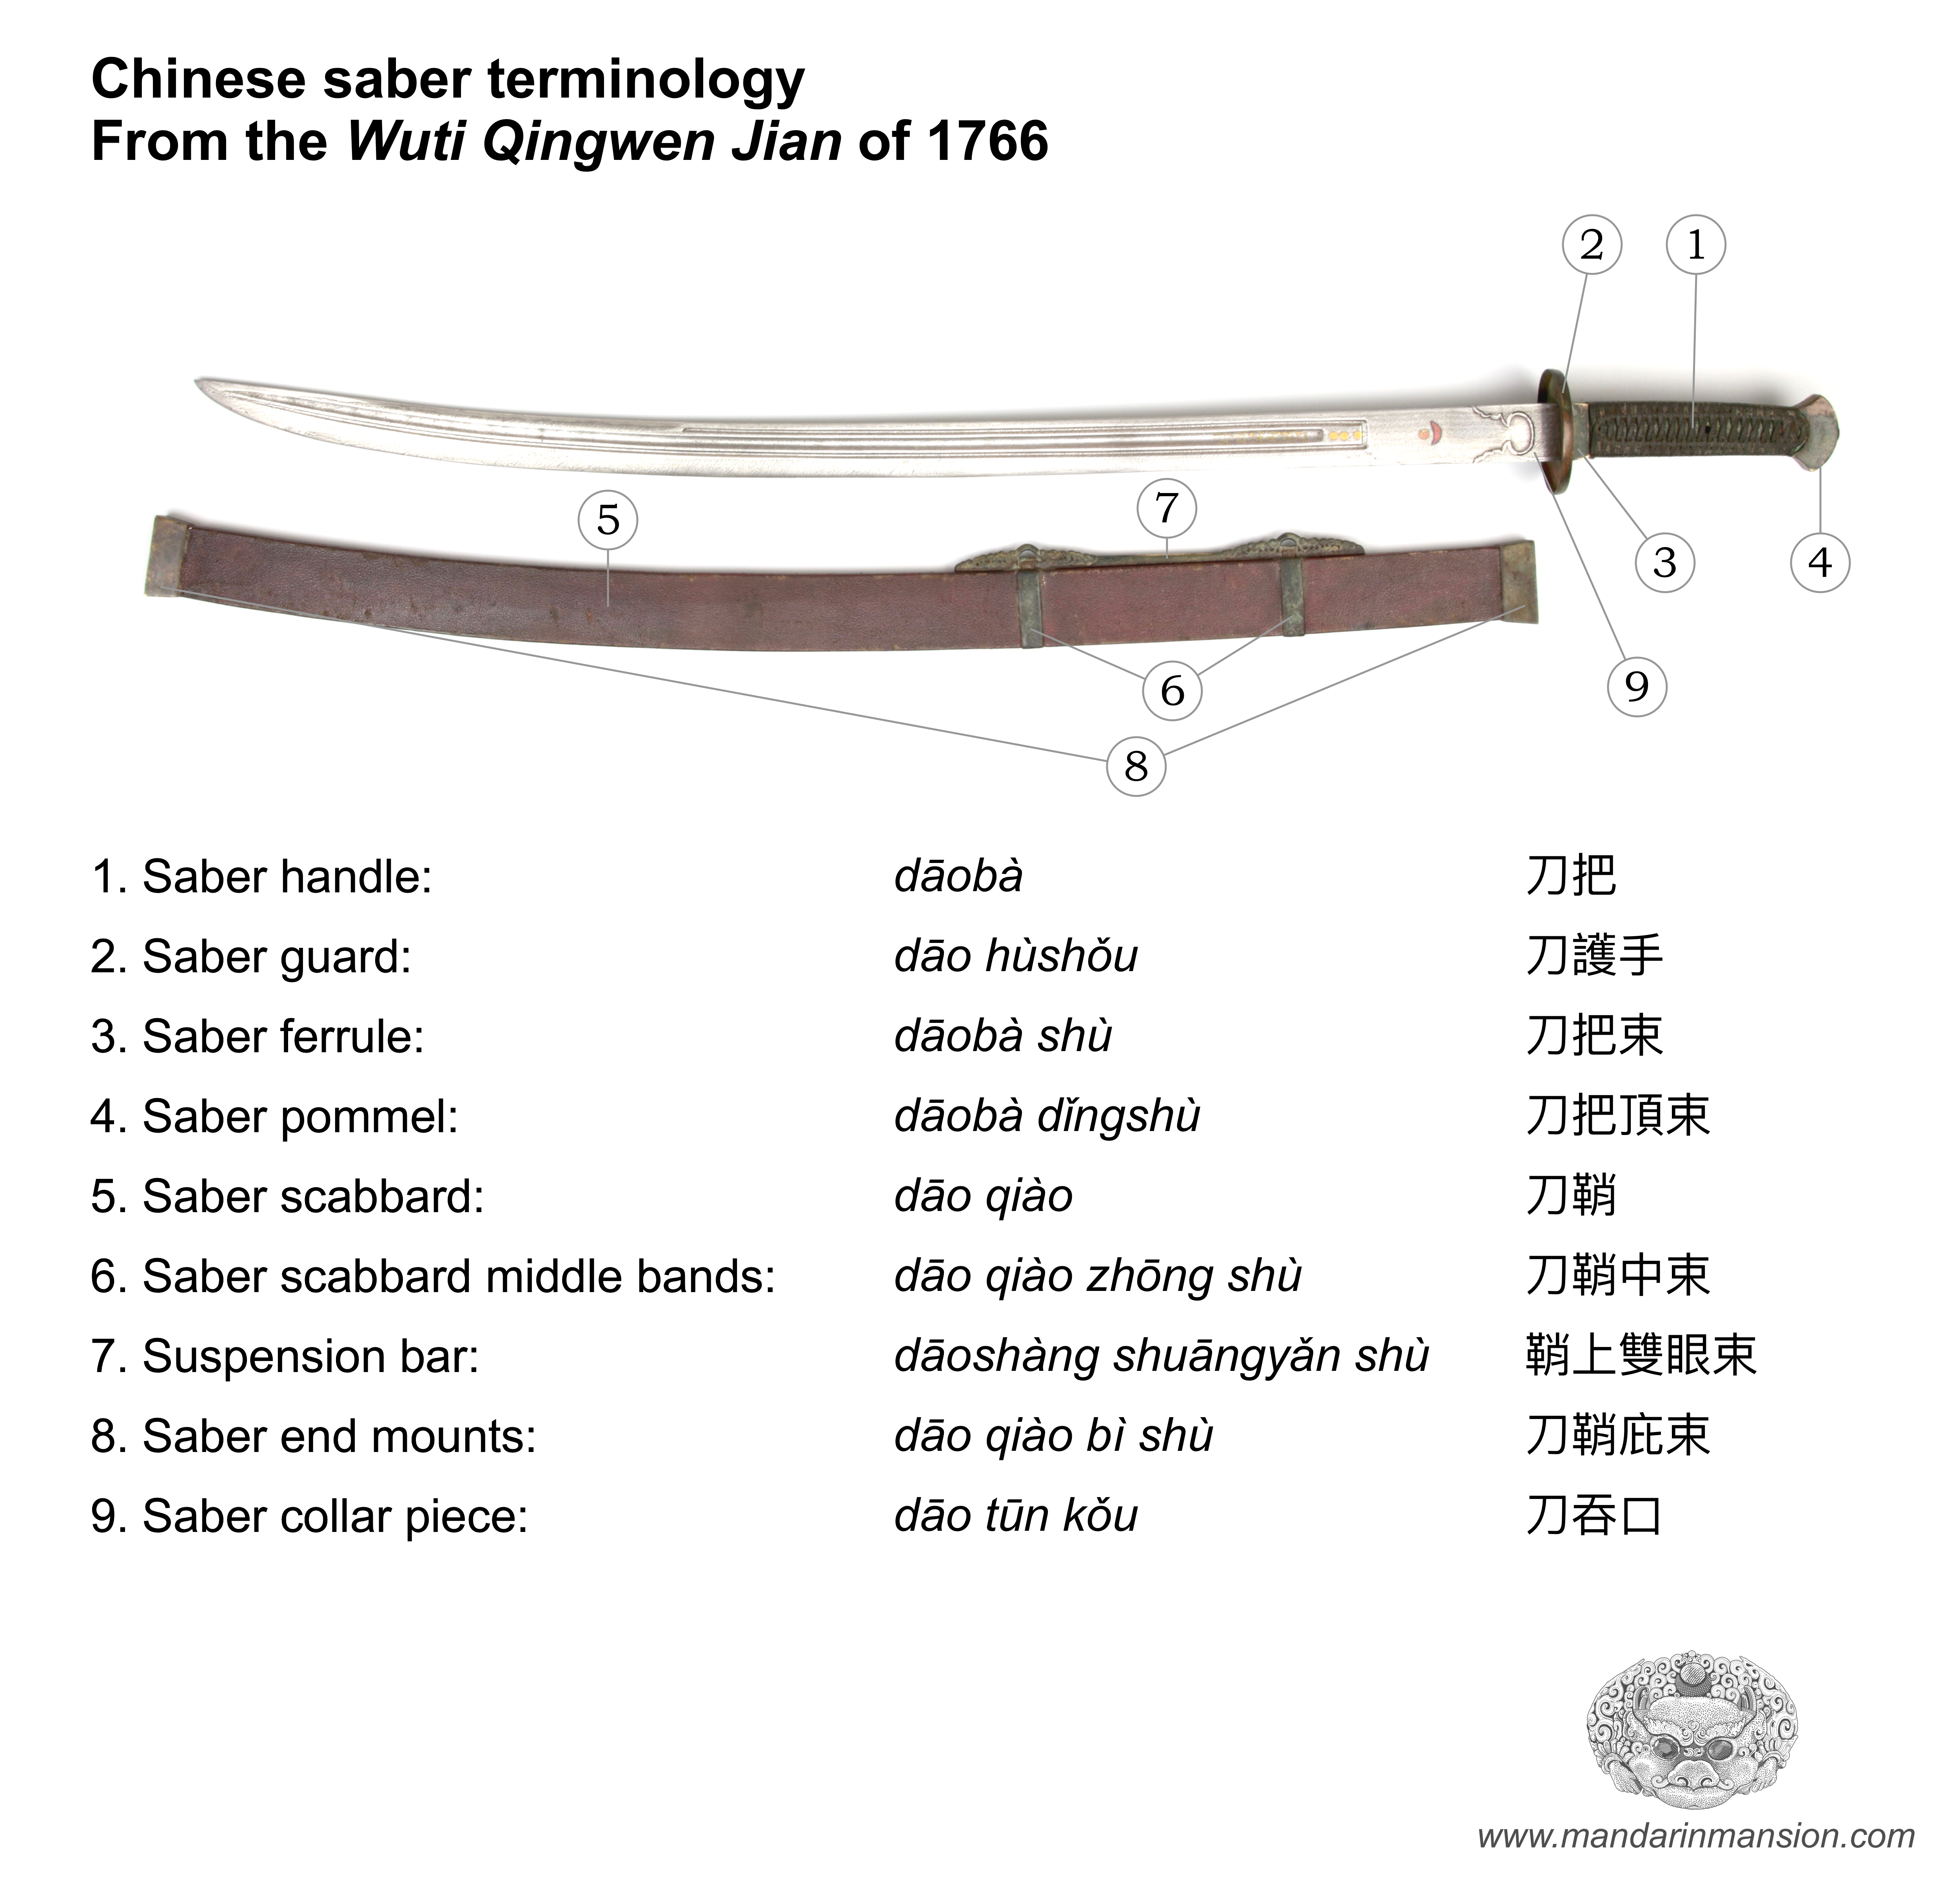 Saber terms of the WTQWJ 1766